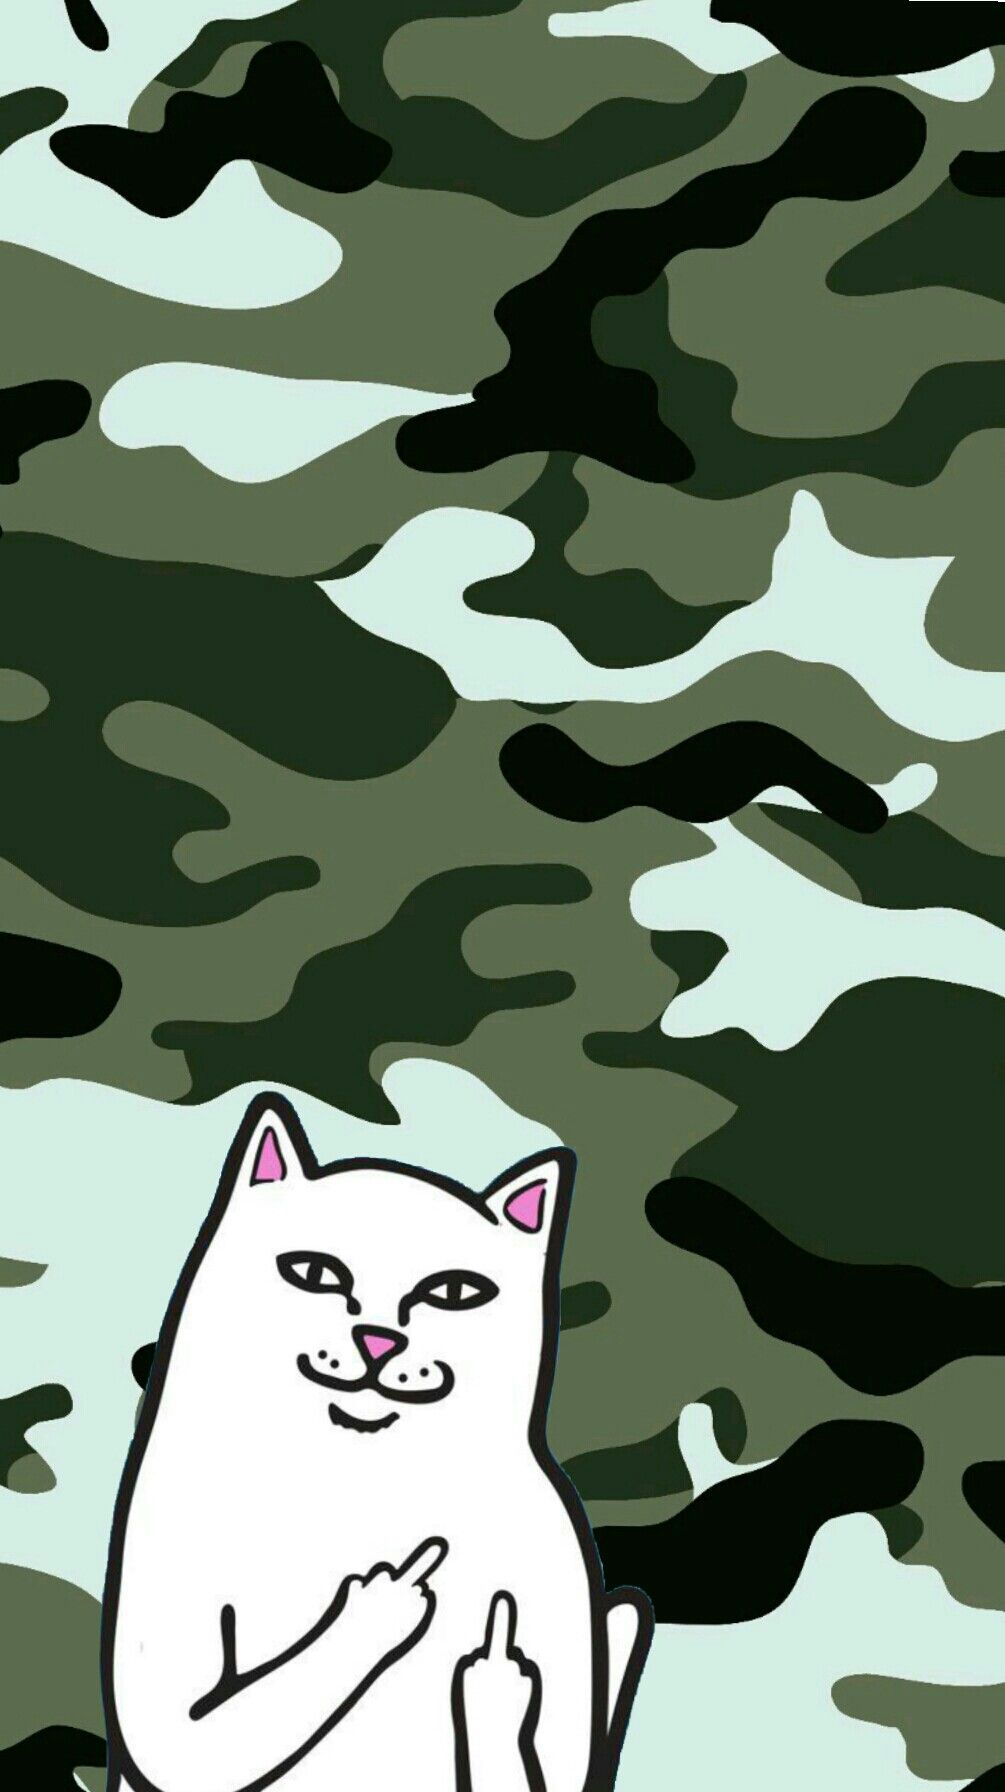 Wallpaper | Middle-Finger Cat | Aesthetics, Covers & Wallpapers em 2019 | Ripndip wallpaper, Cat ...